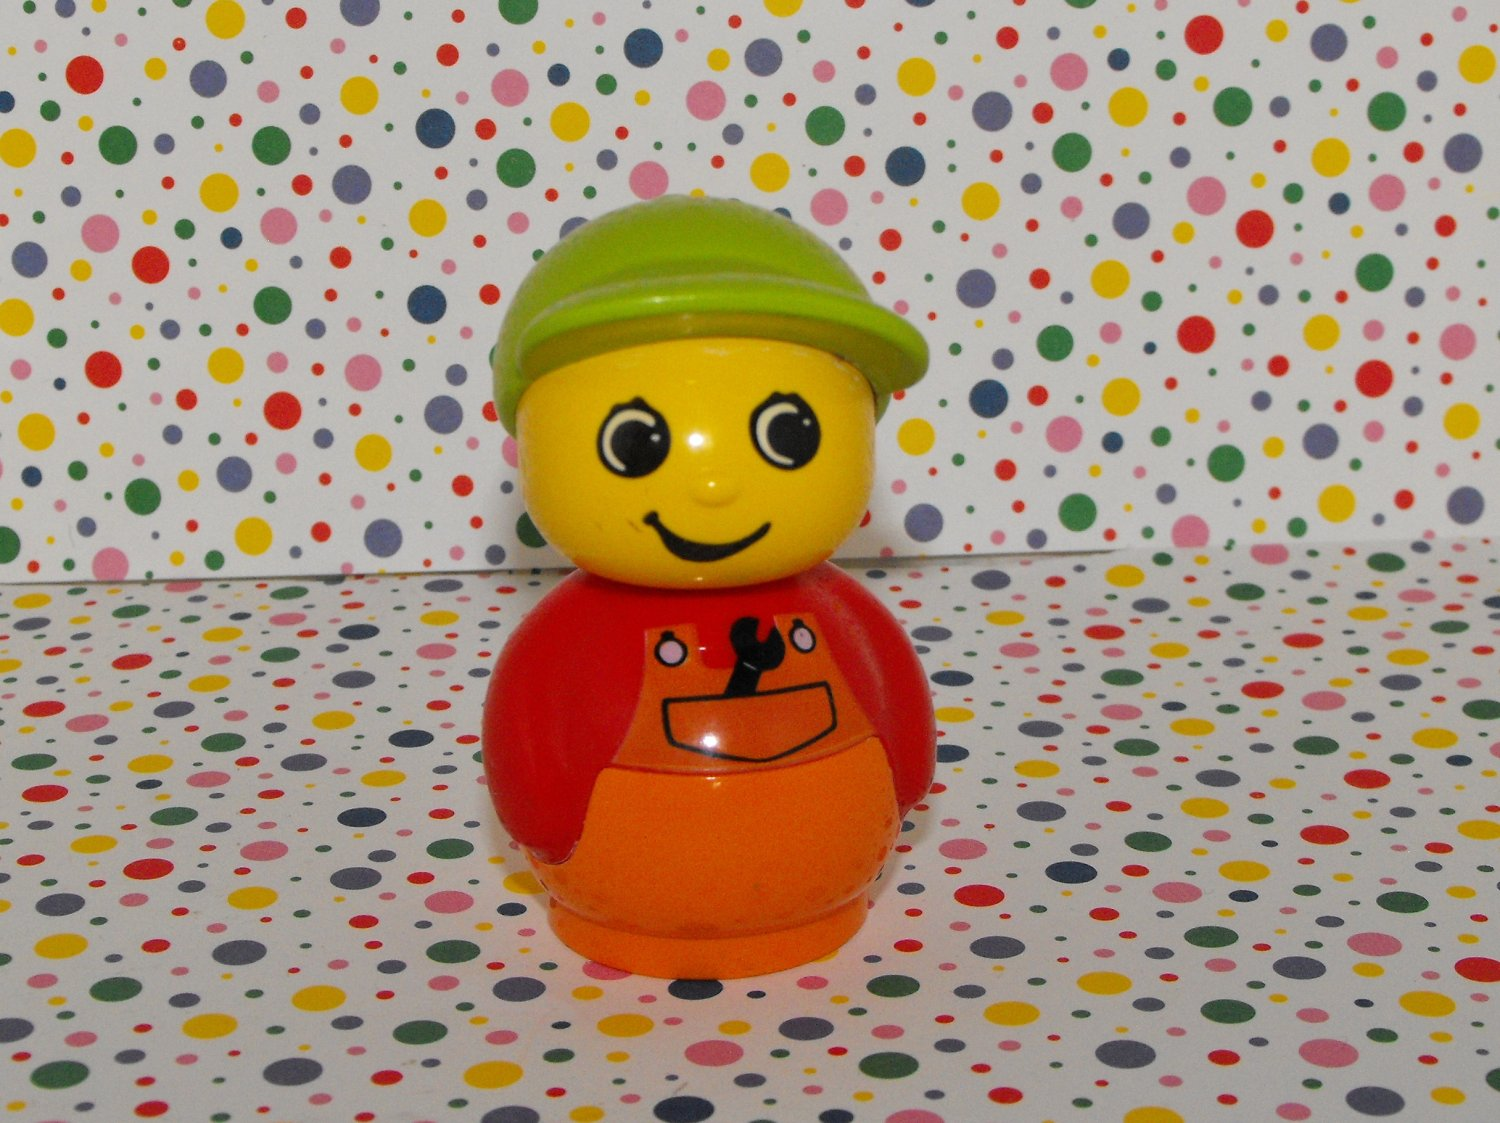 2*SOLD Lego Duplo Primo Blocks Boy with Wrench Figure Part